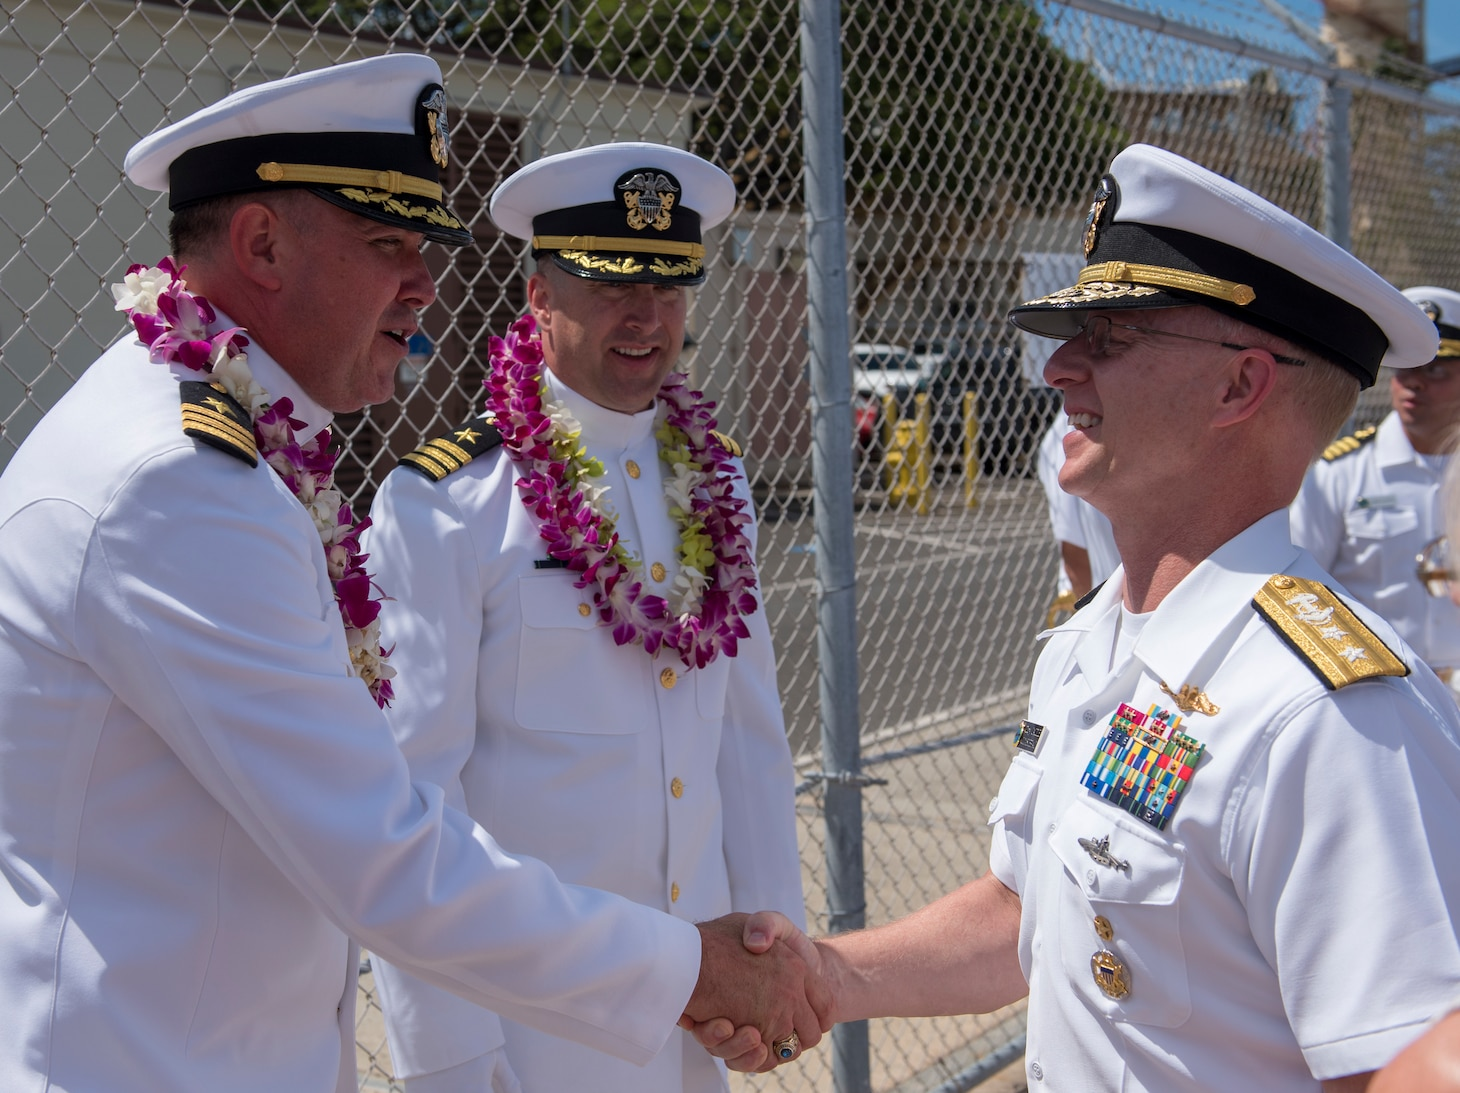 Rear Adm. Daryl L. Caudle, commander, Submarine Force, U.S. Pacific Fleet, right, congratulates Cmdr. Jacob A. Foret following the Los Angeles-class fast-attack submarine USS Santa Fe (SSN 763) change of command ceremony on the submarine piers in Joint Base Pearl Harbor-Hickam, April 13.